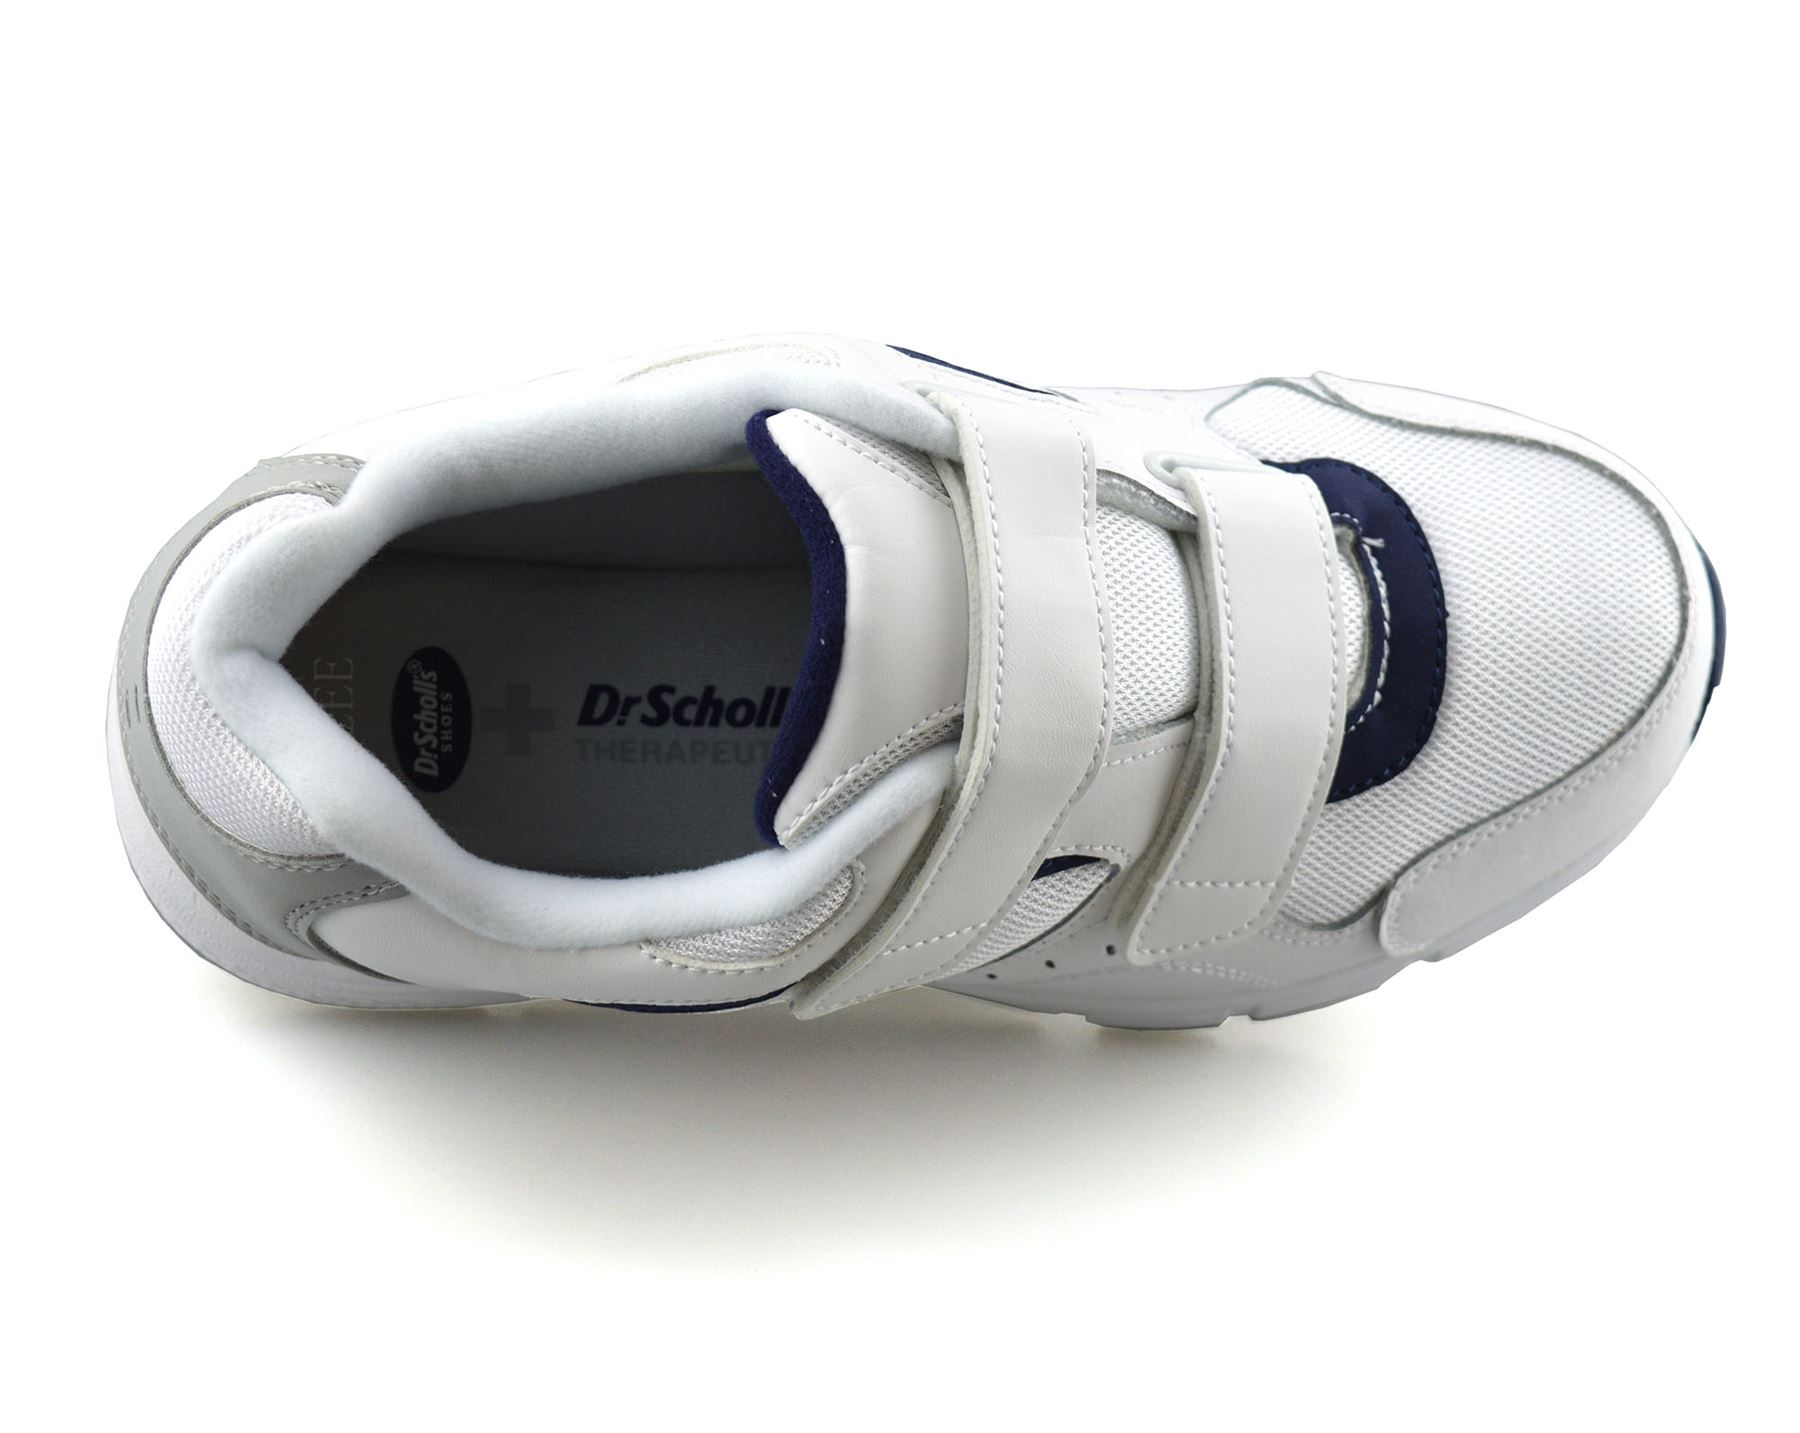 Mens-Dr-Scholls-Wide-Fit-Leather-Casual-Walking-Gym-Comfort-Trainers-Shoes-Size thumbnail 12